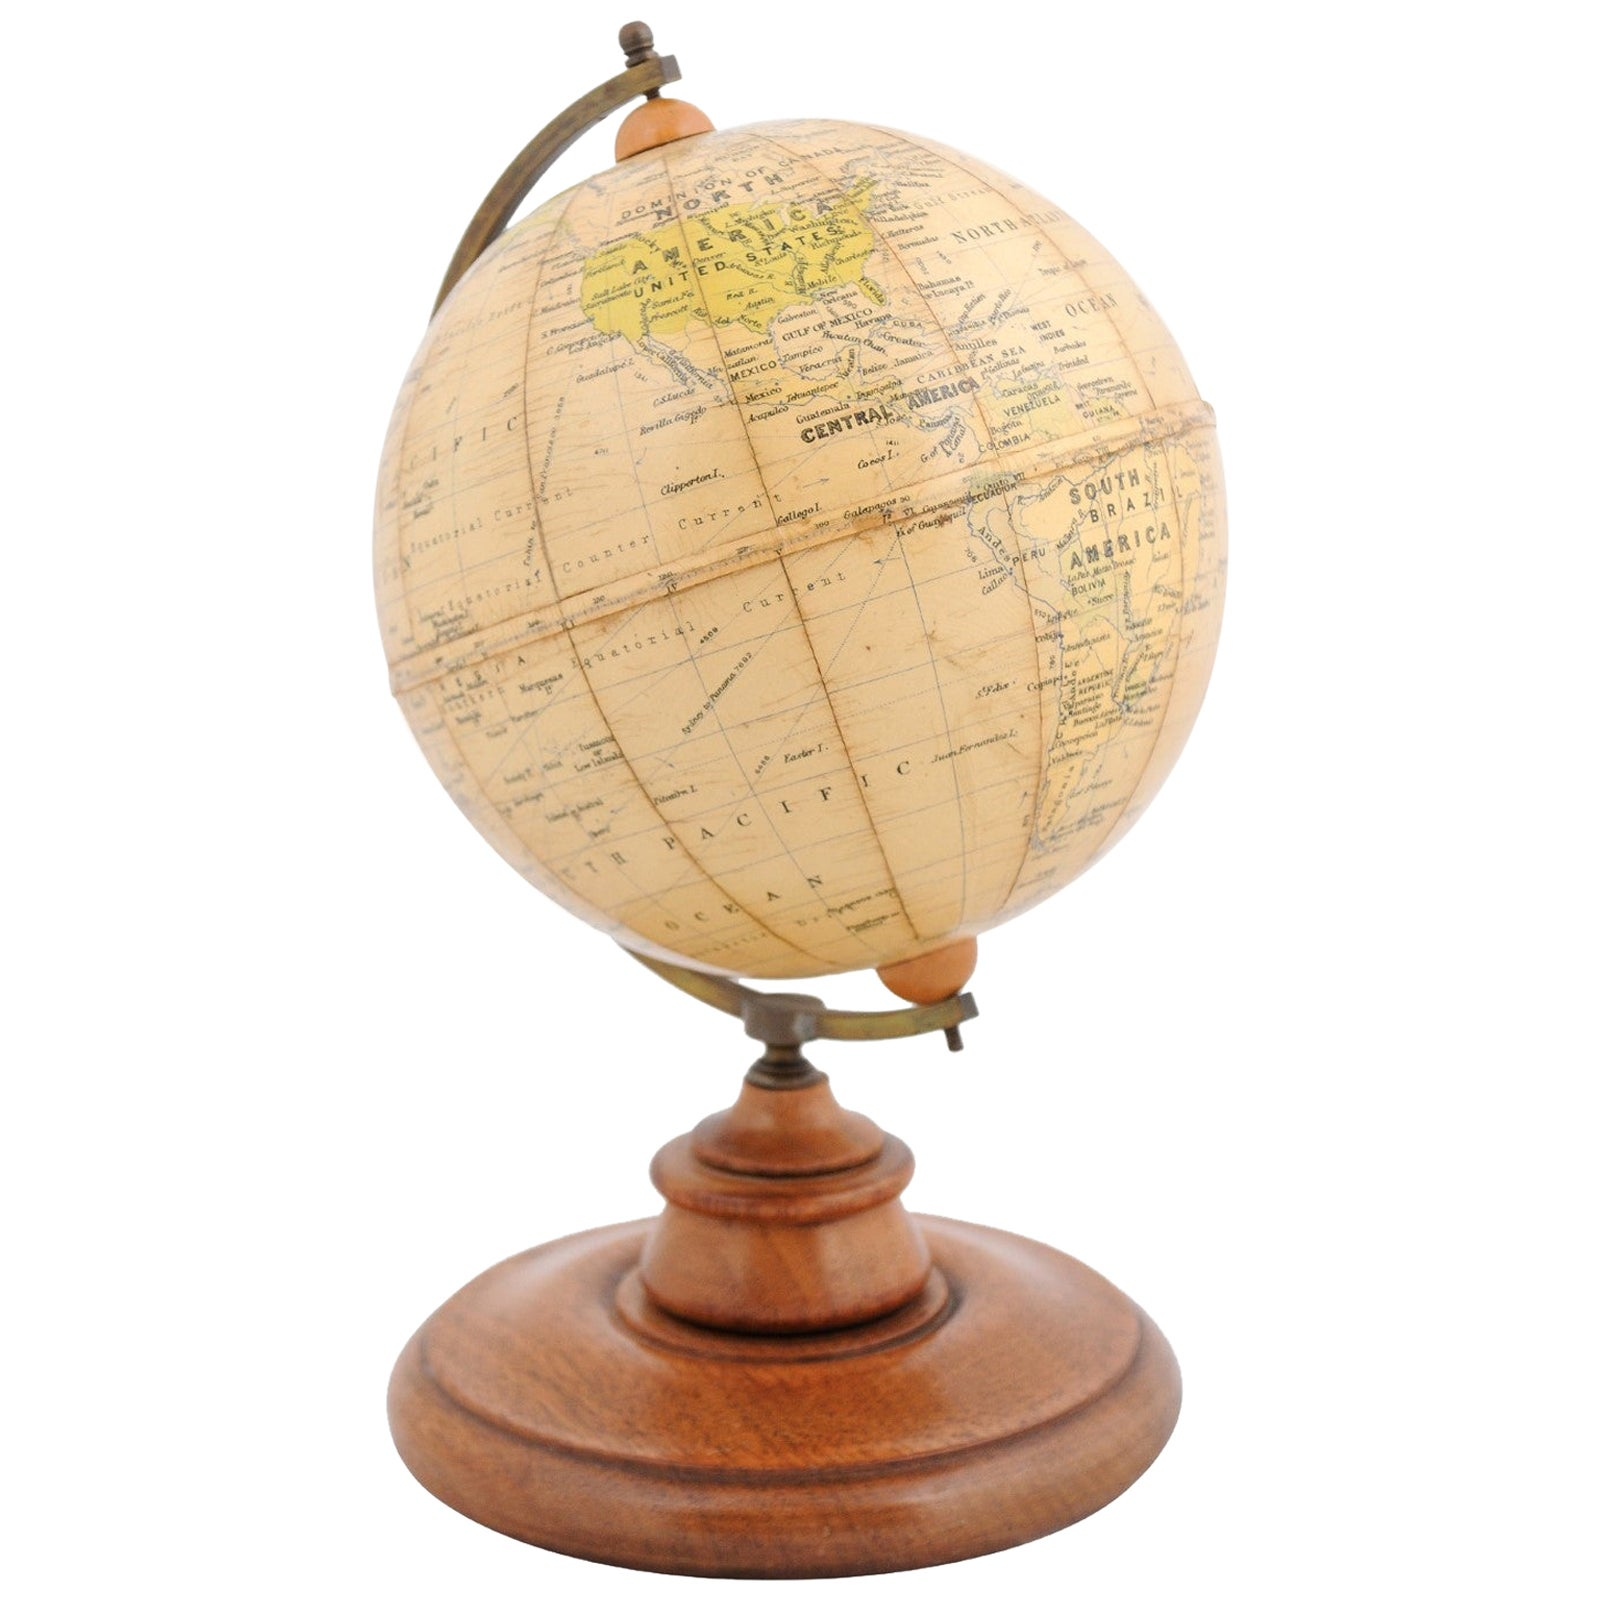 Small English 20th Century George Philip Terrestrial Globe on Wooden Base